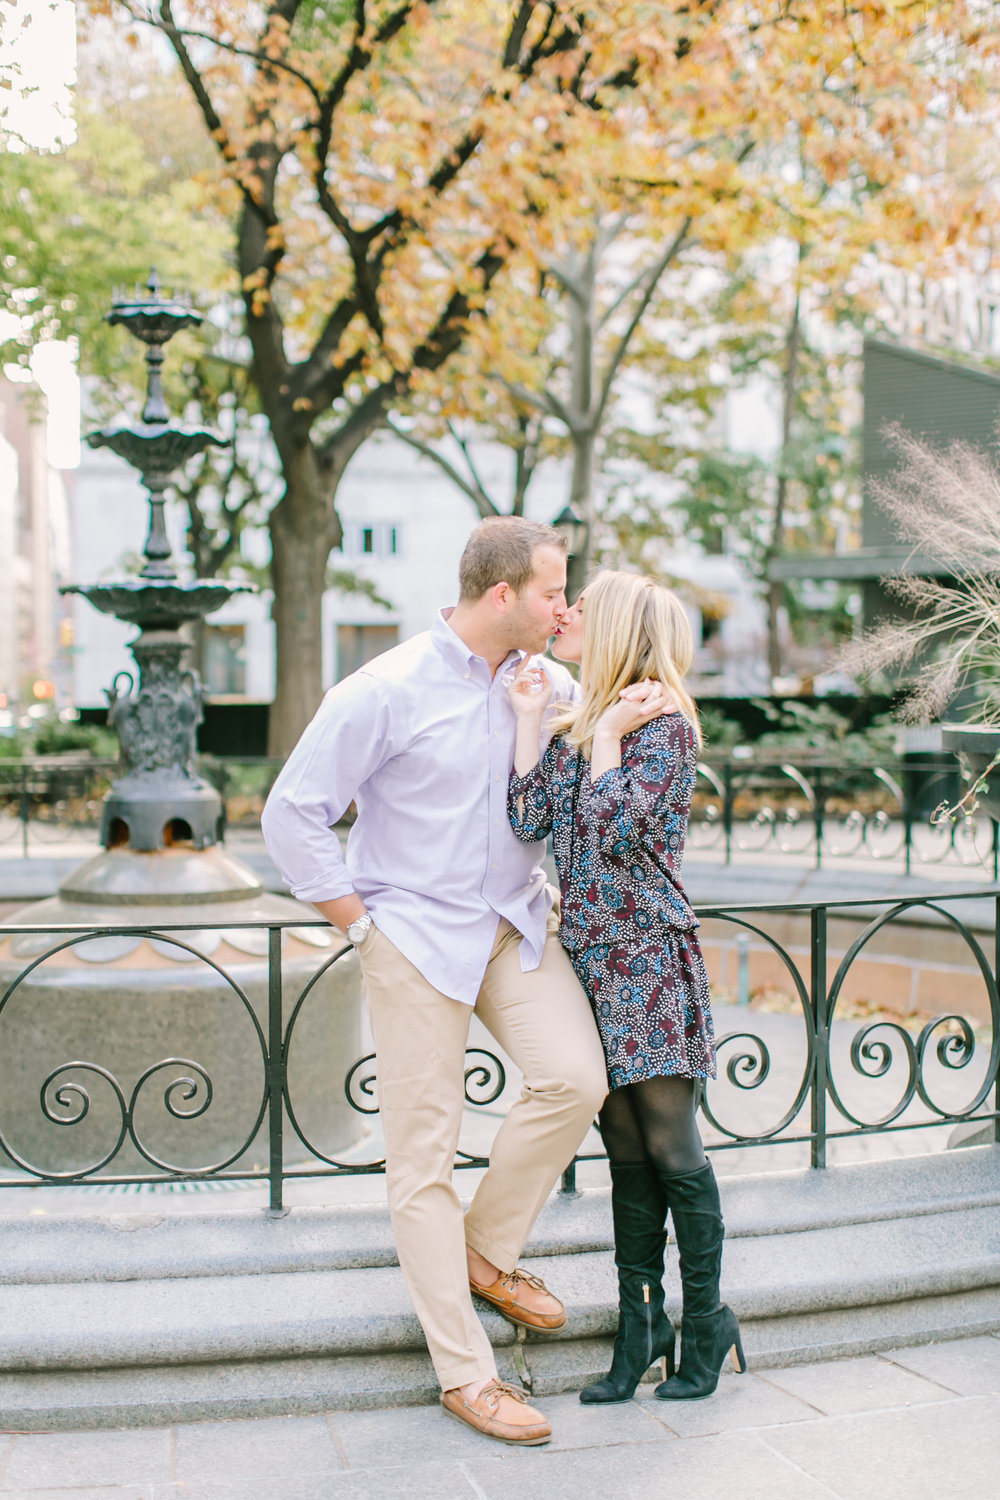 love&lightphotographs_marissa&jeffrey_engagement_preview-1.jpg